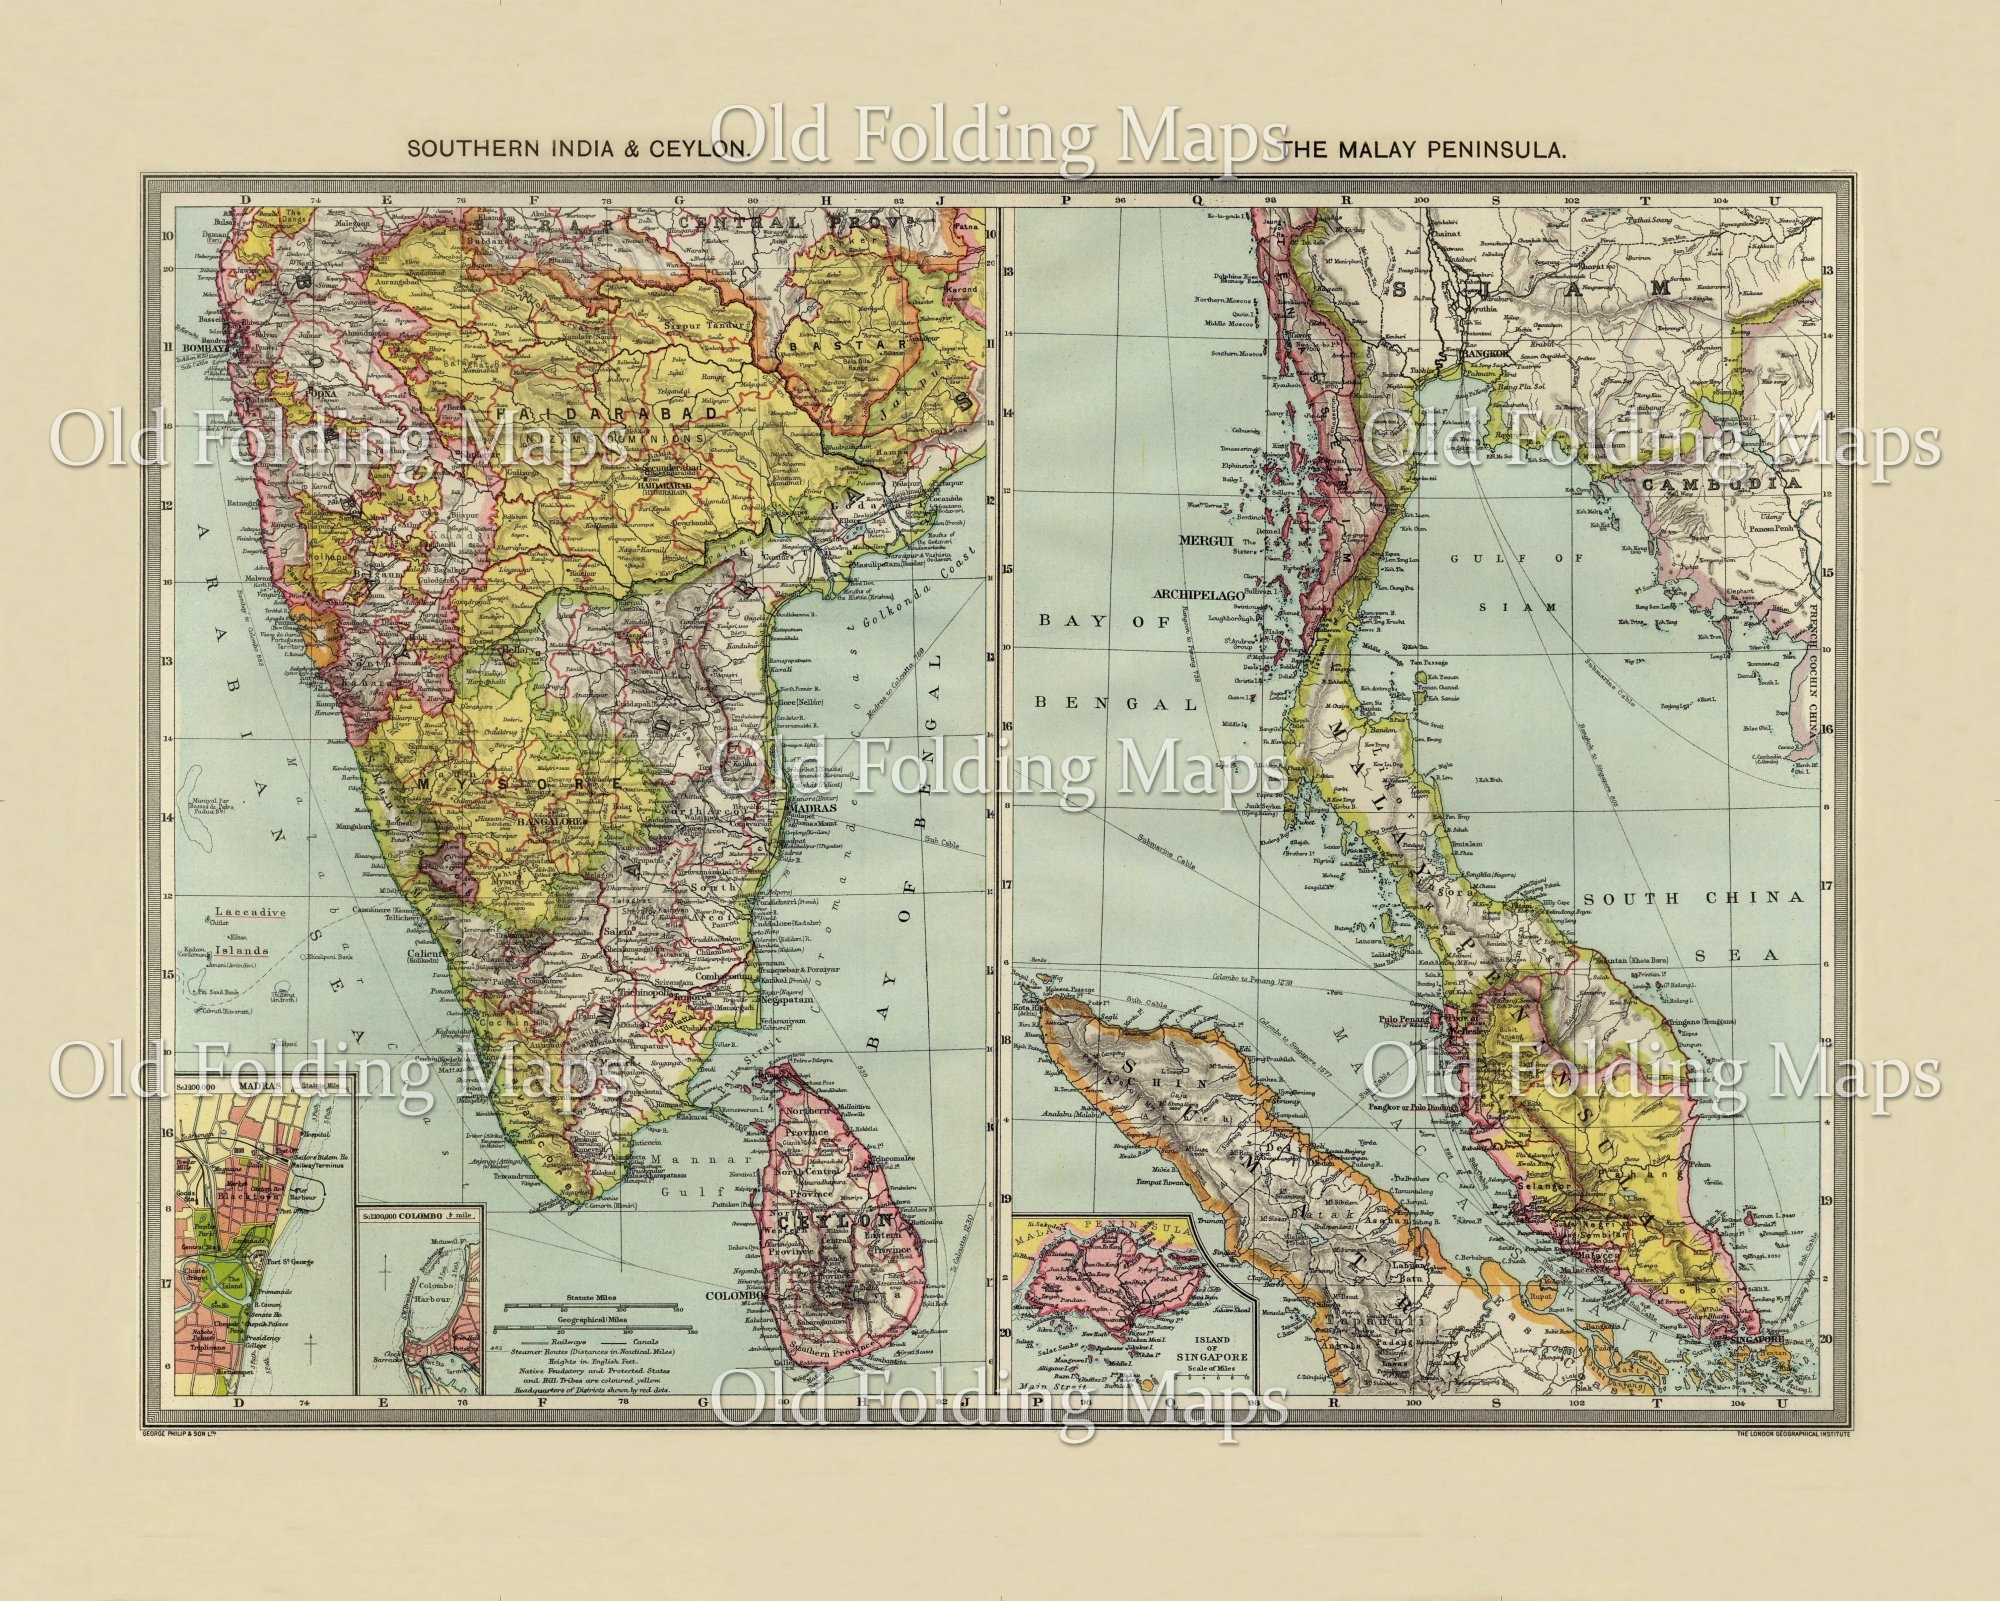 Old Map of Southern India & Ceylon circa 1900